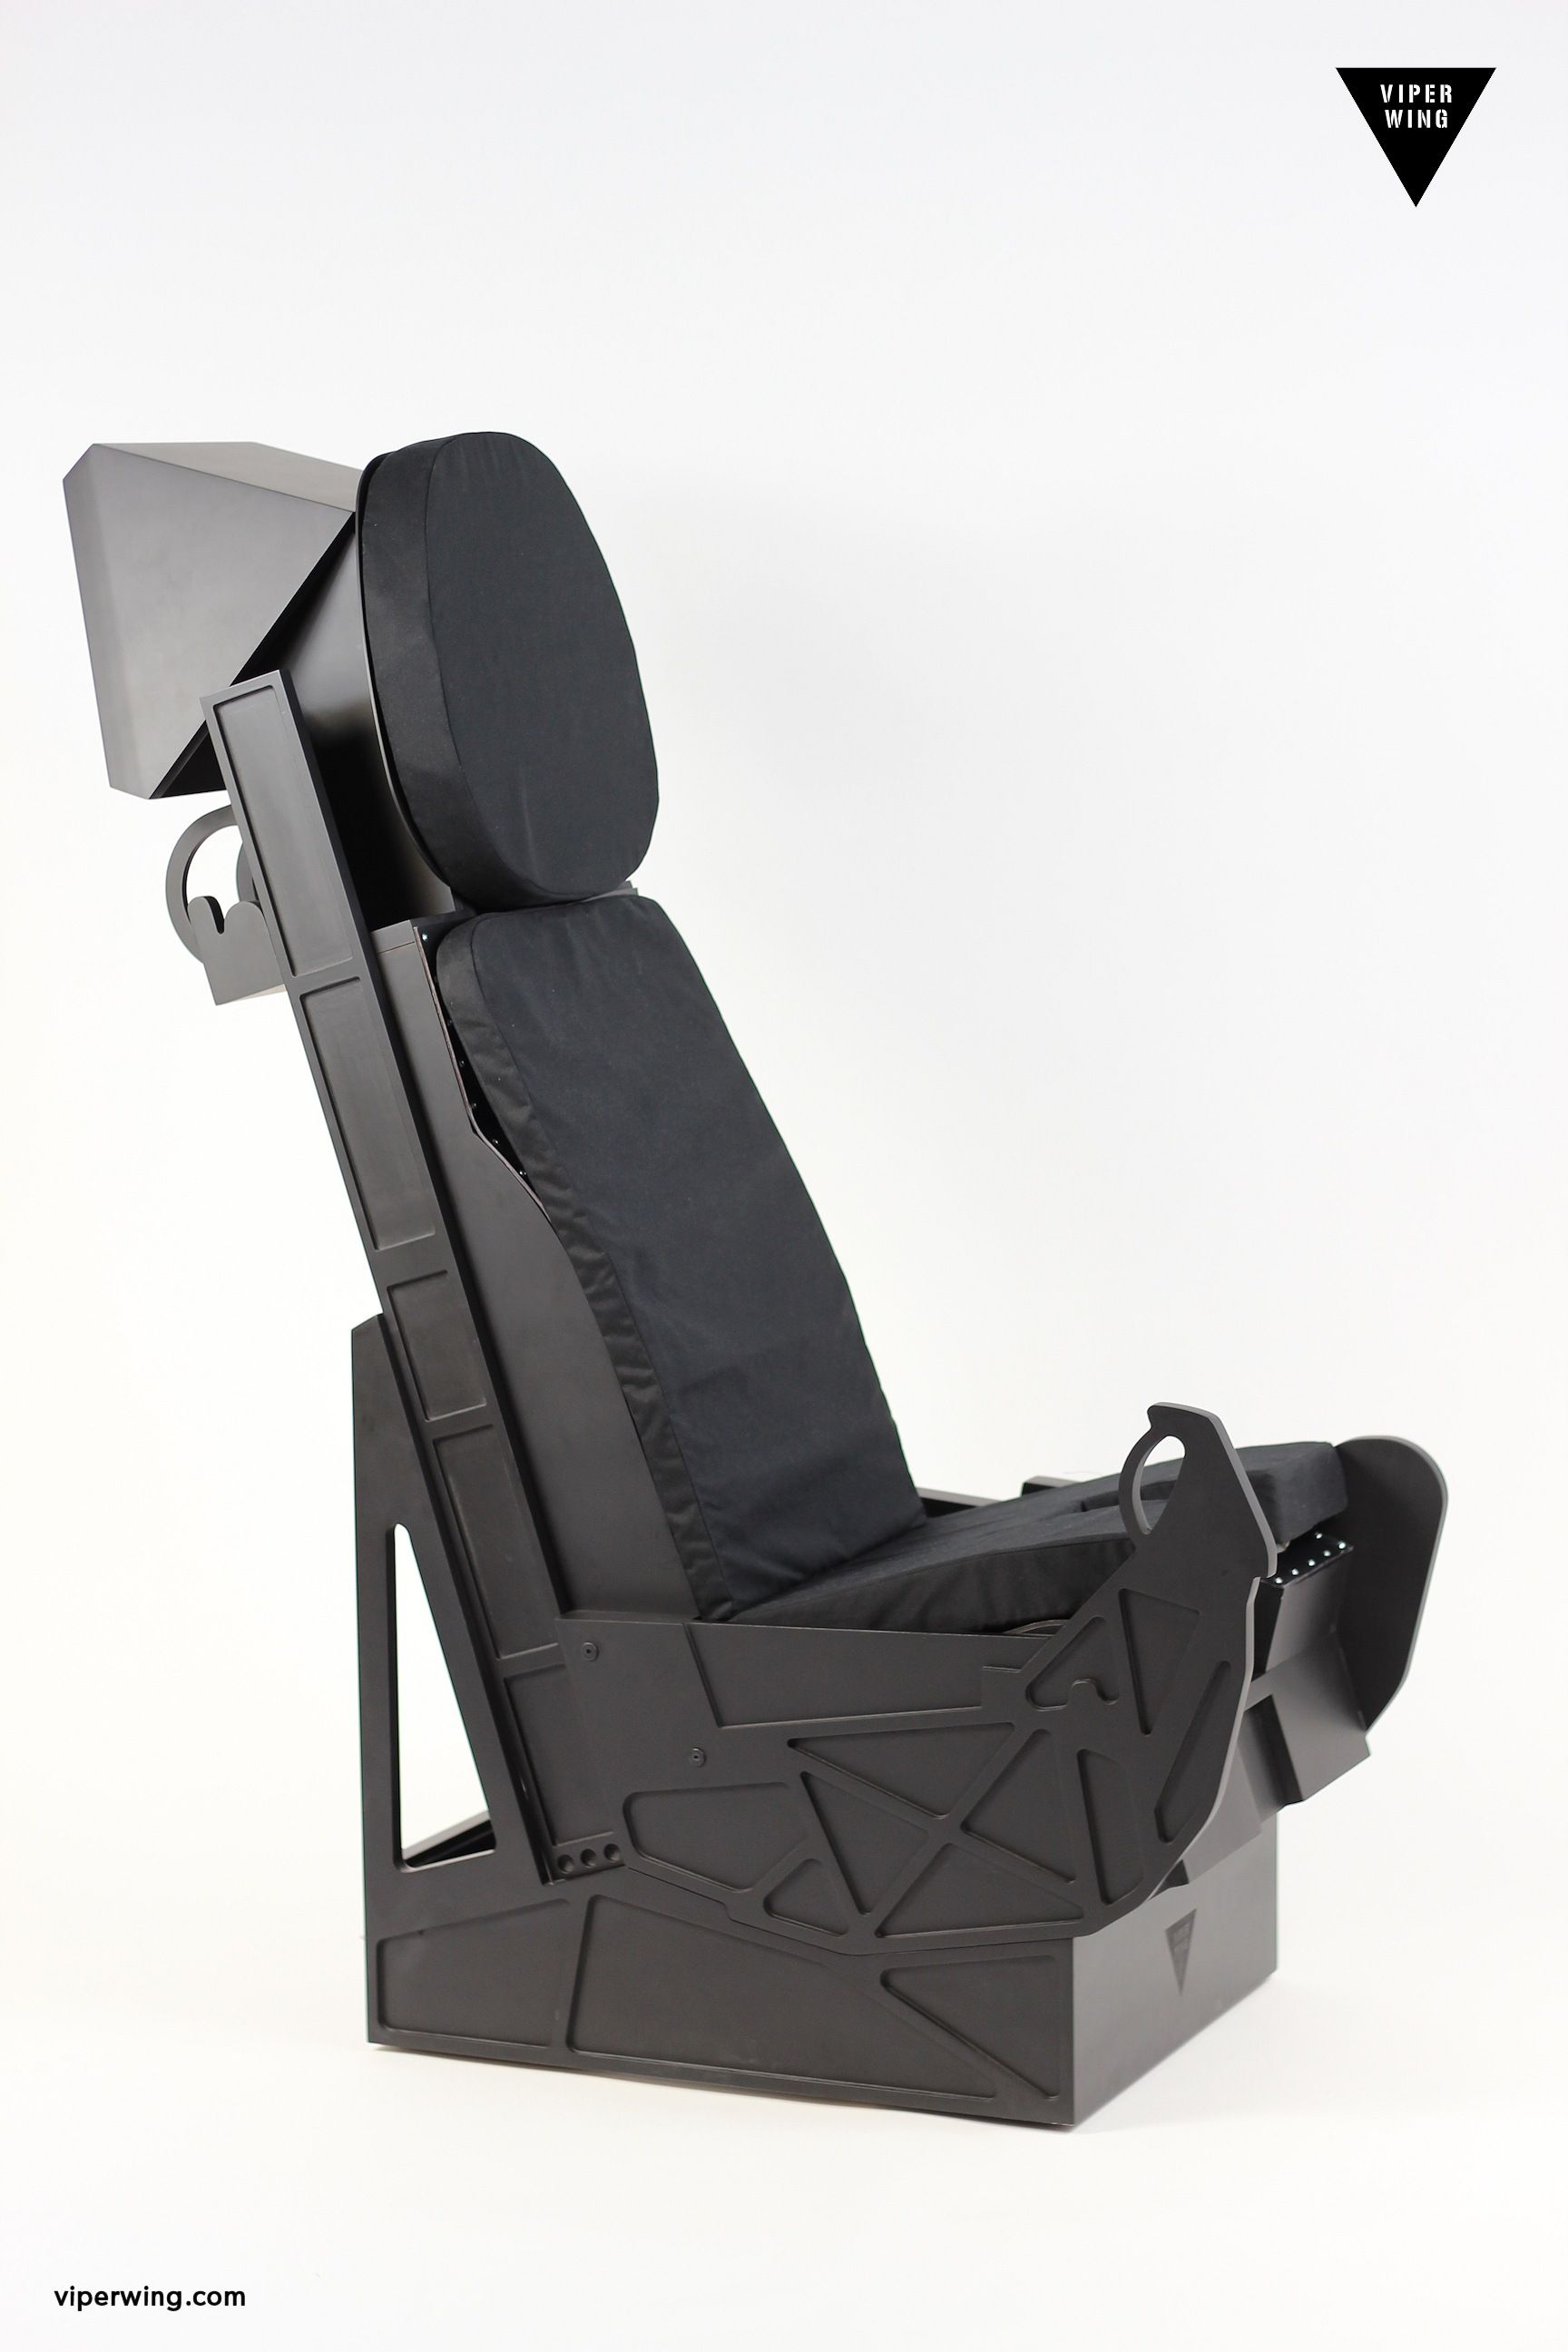 ejection seat office chair piston first worldwide f 35 inspired replica www